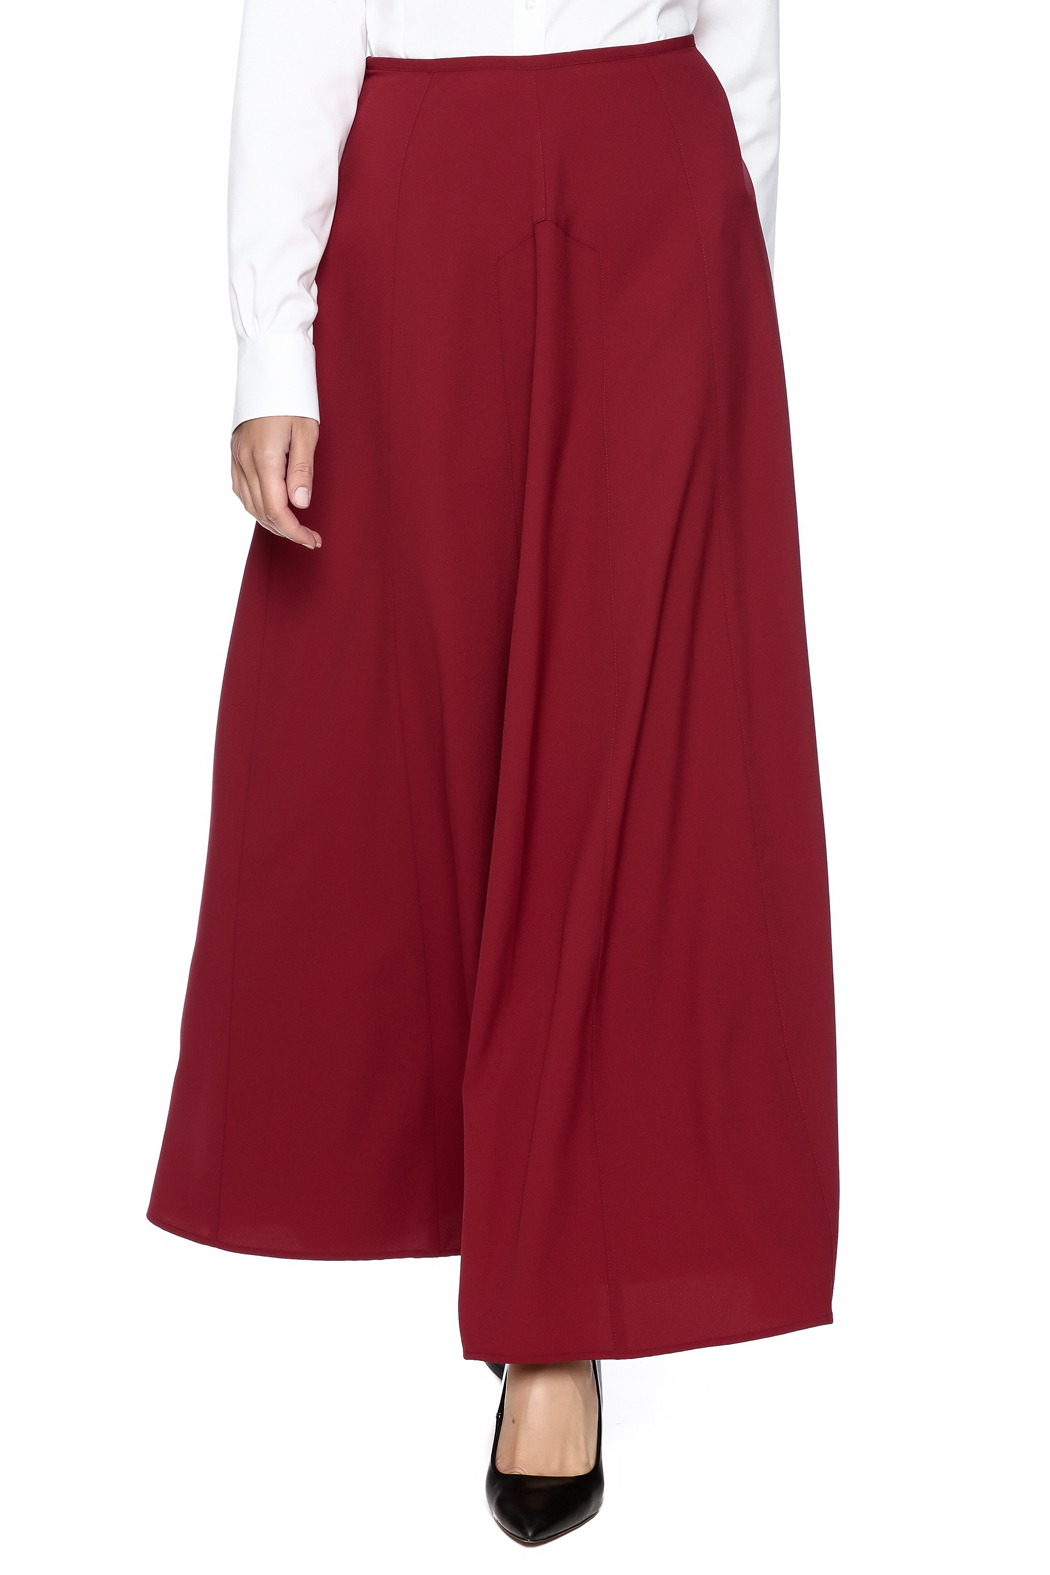 The Cue A Line Maxi Skirt - Main Image